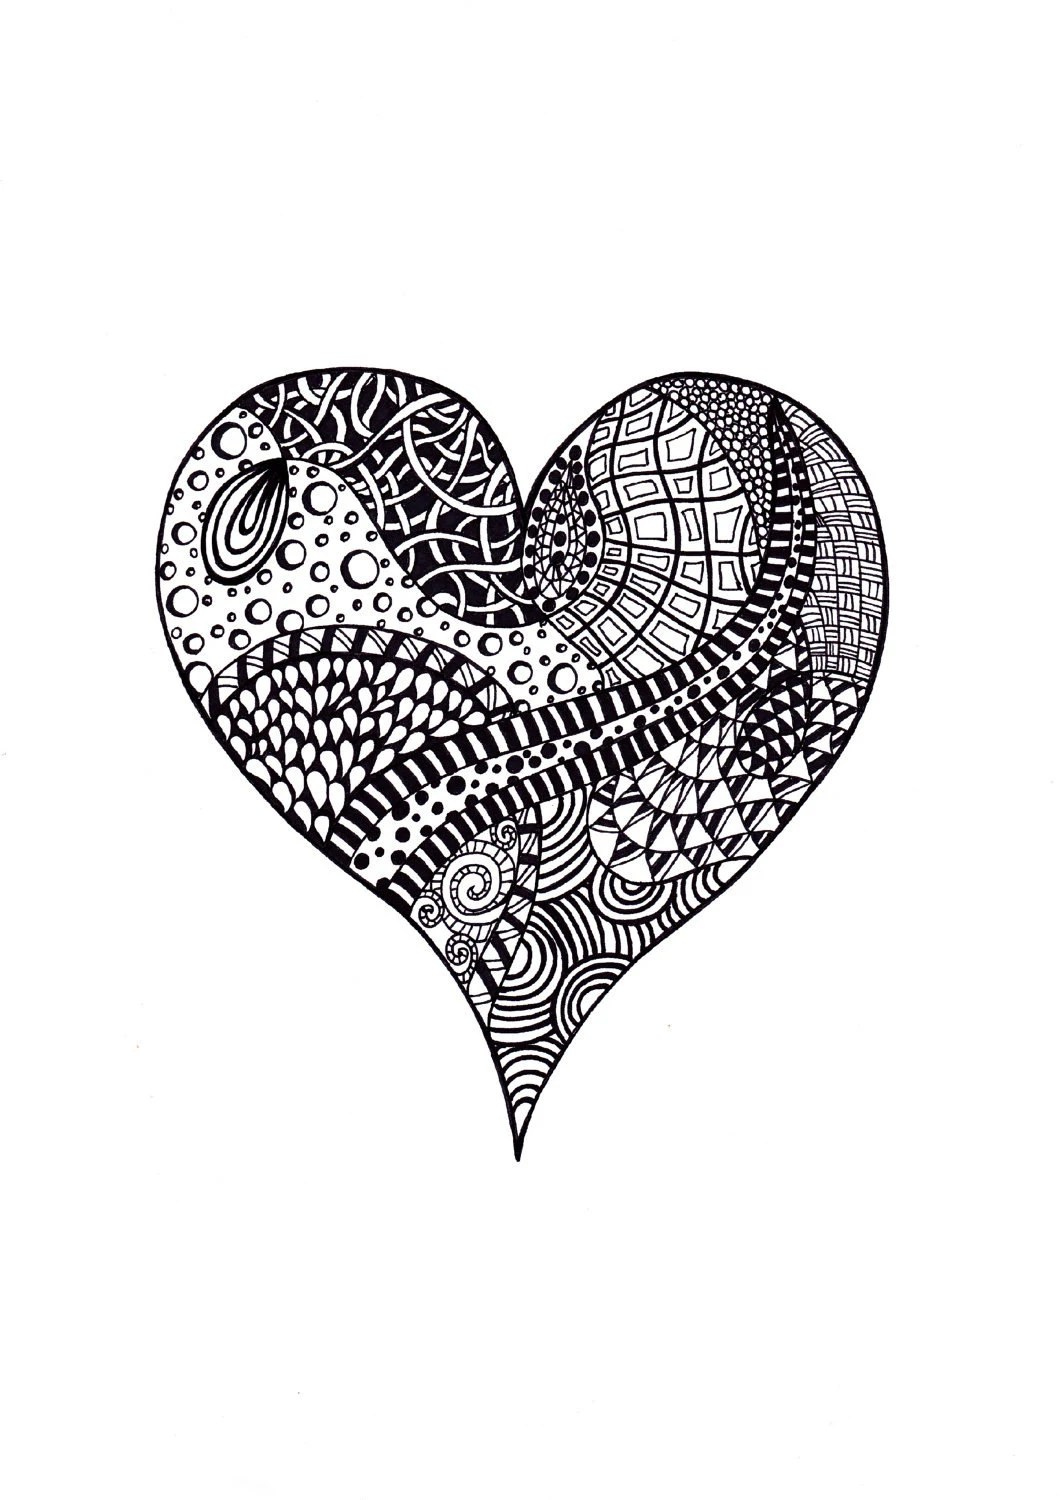 ACEO Print, Ink Drawing Heart Zentangle, Black and White